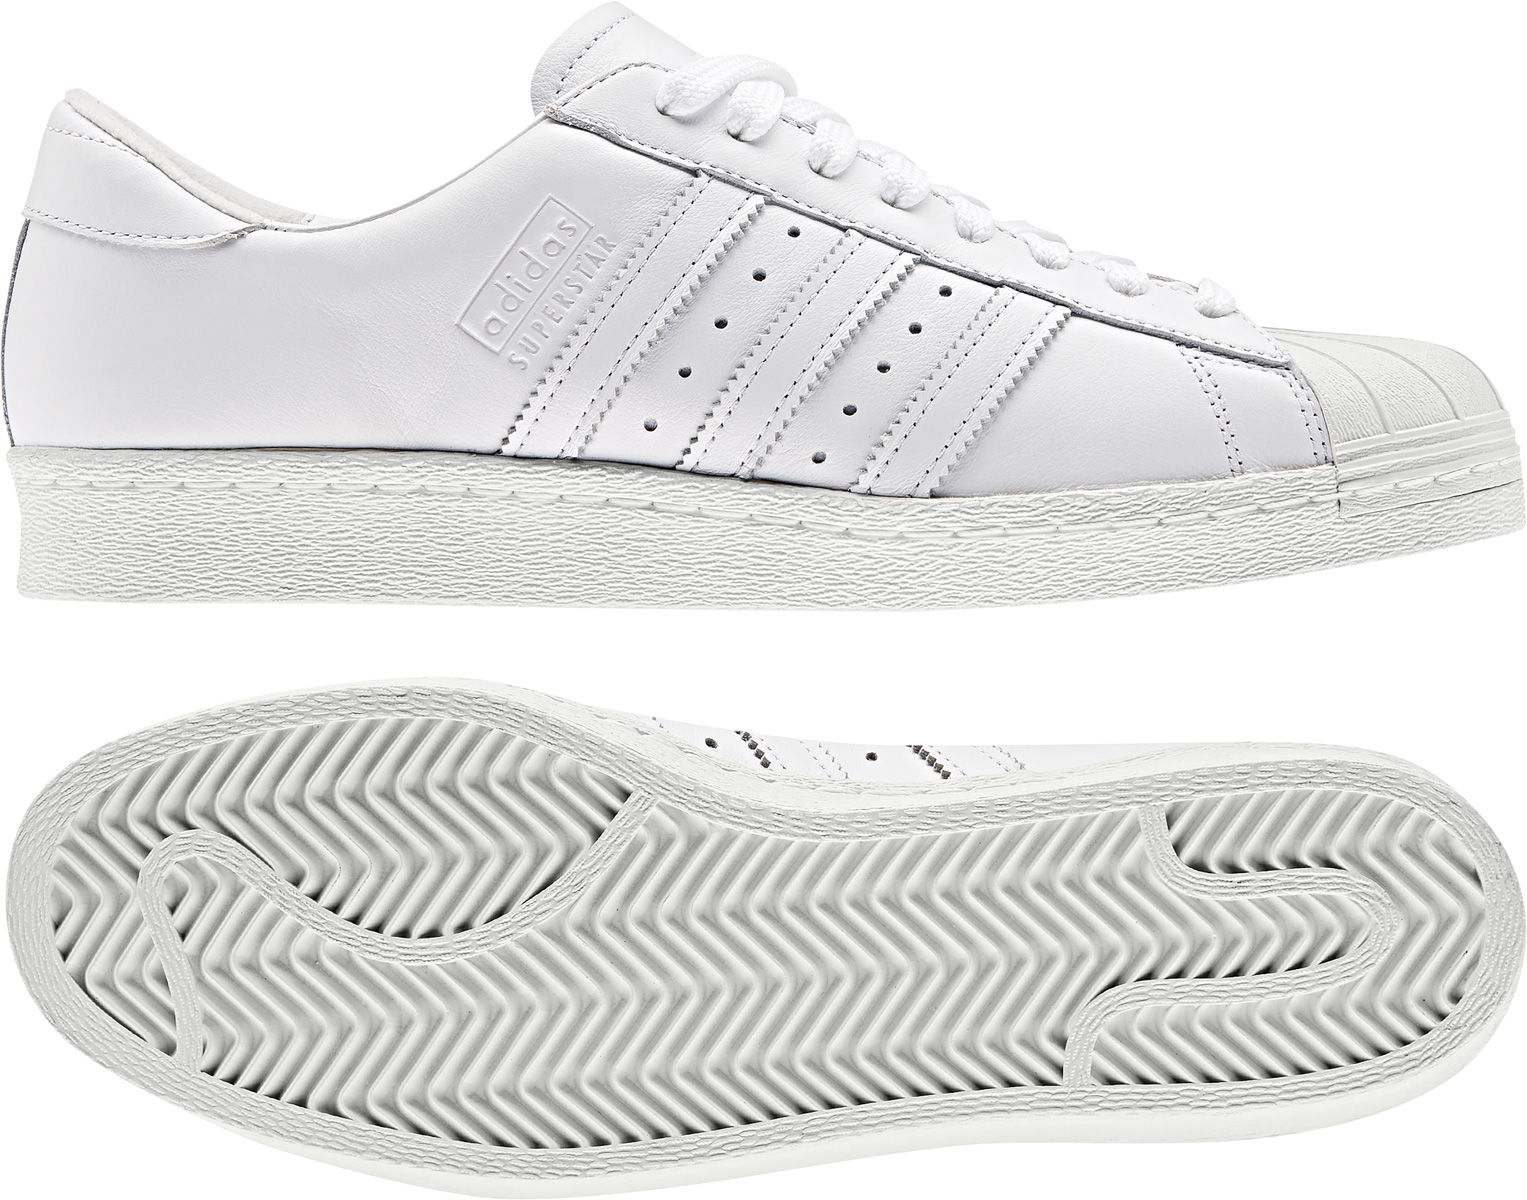 Adidas Superstar 80s PVP 149,95€